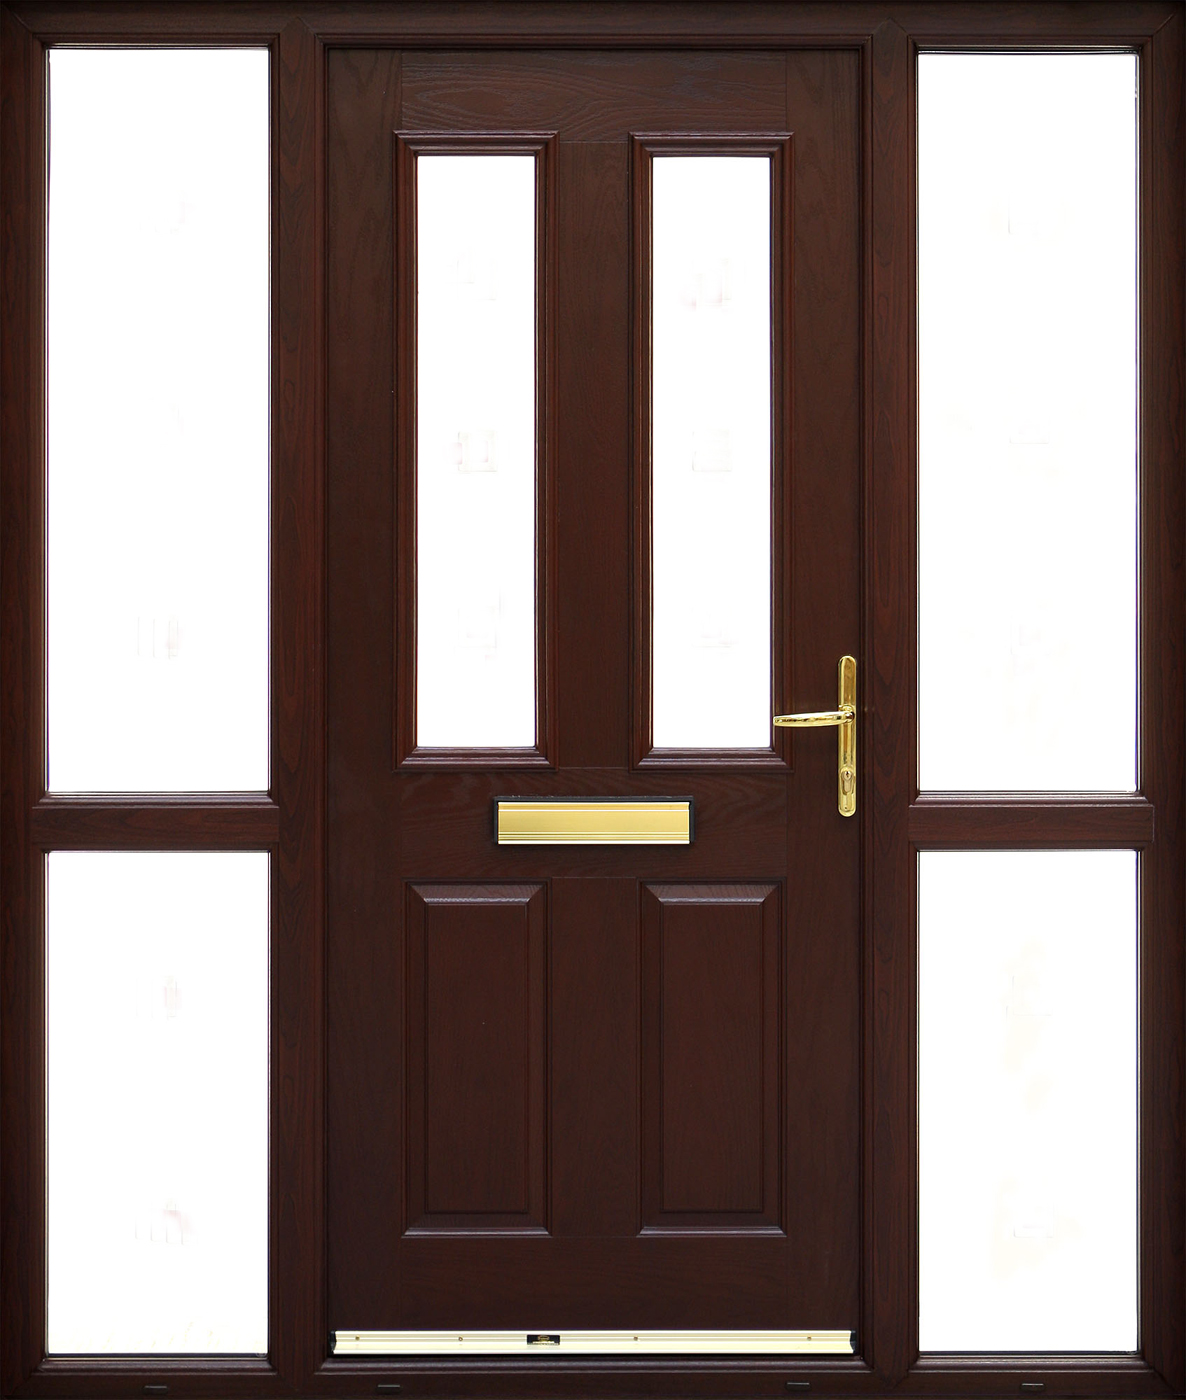 Grp Oxford Woodgrain External Front Doors Grp Composite